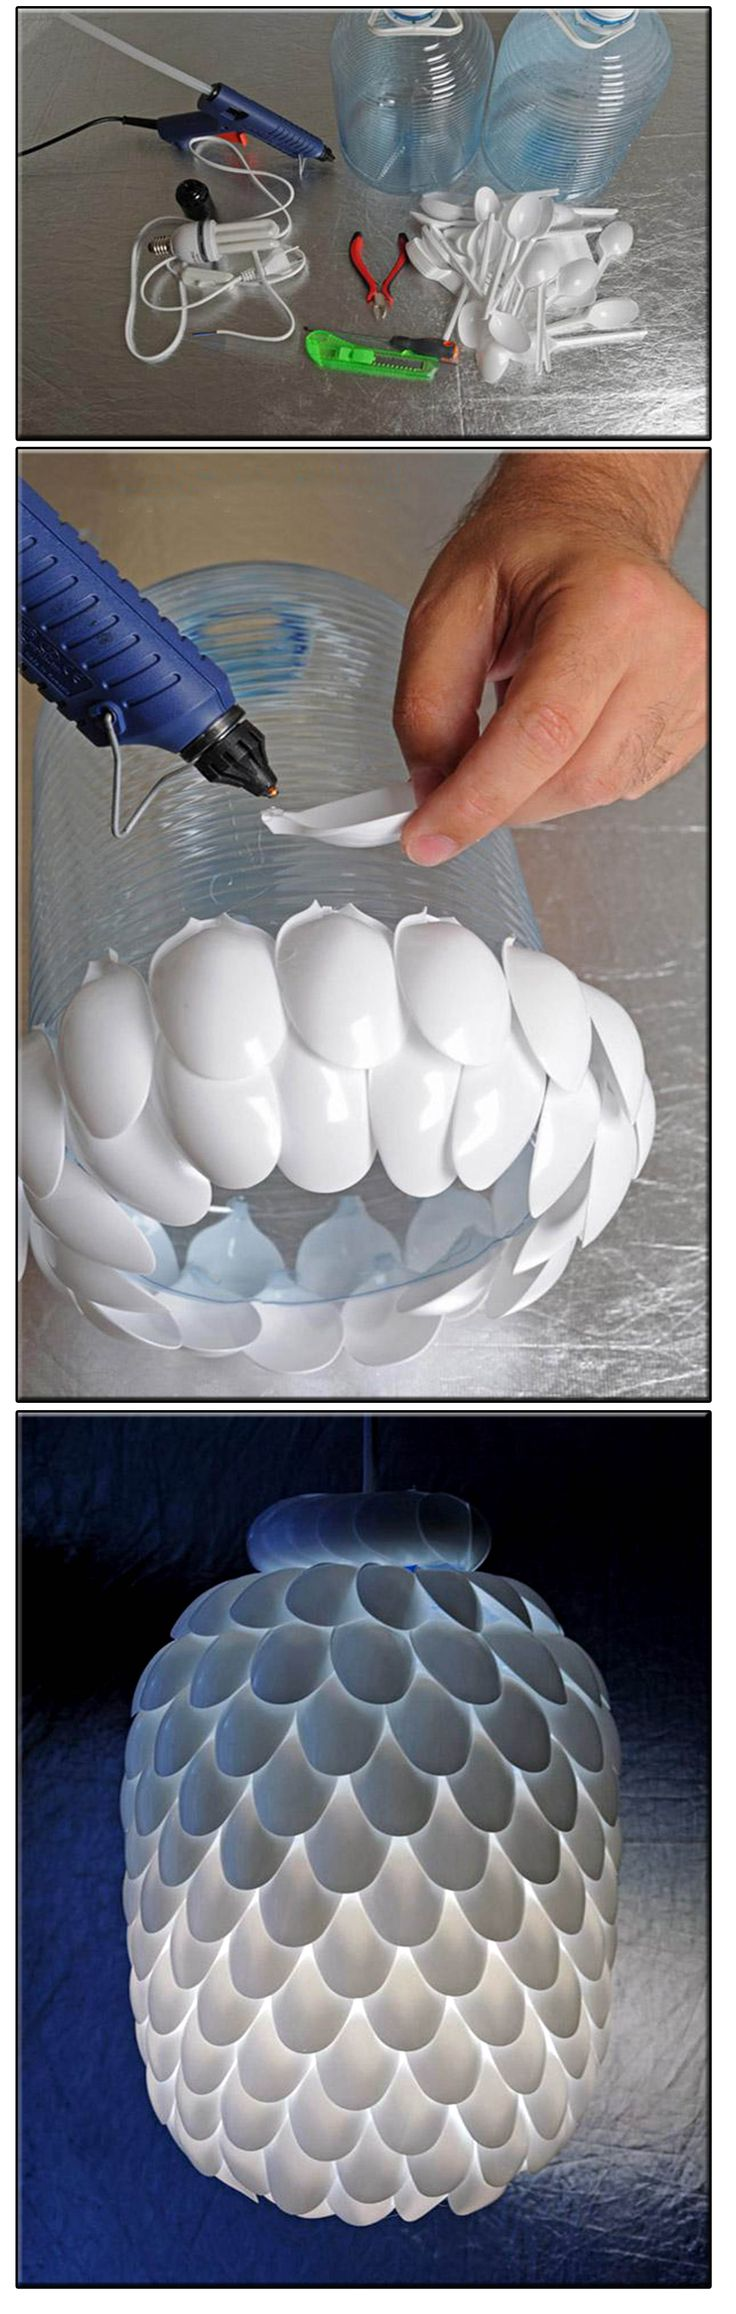 25 best ideas about plastic spoon lamp on pinterest for Plastic spoon lamp video